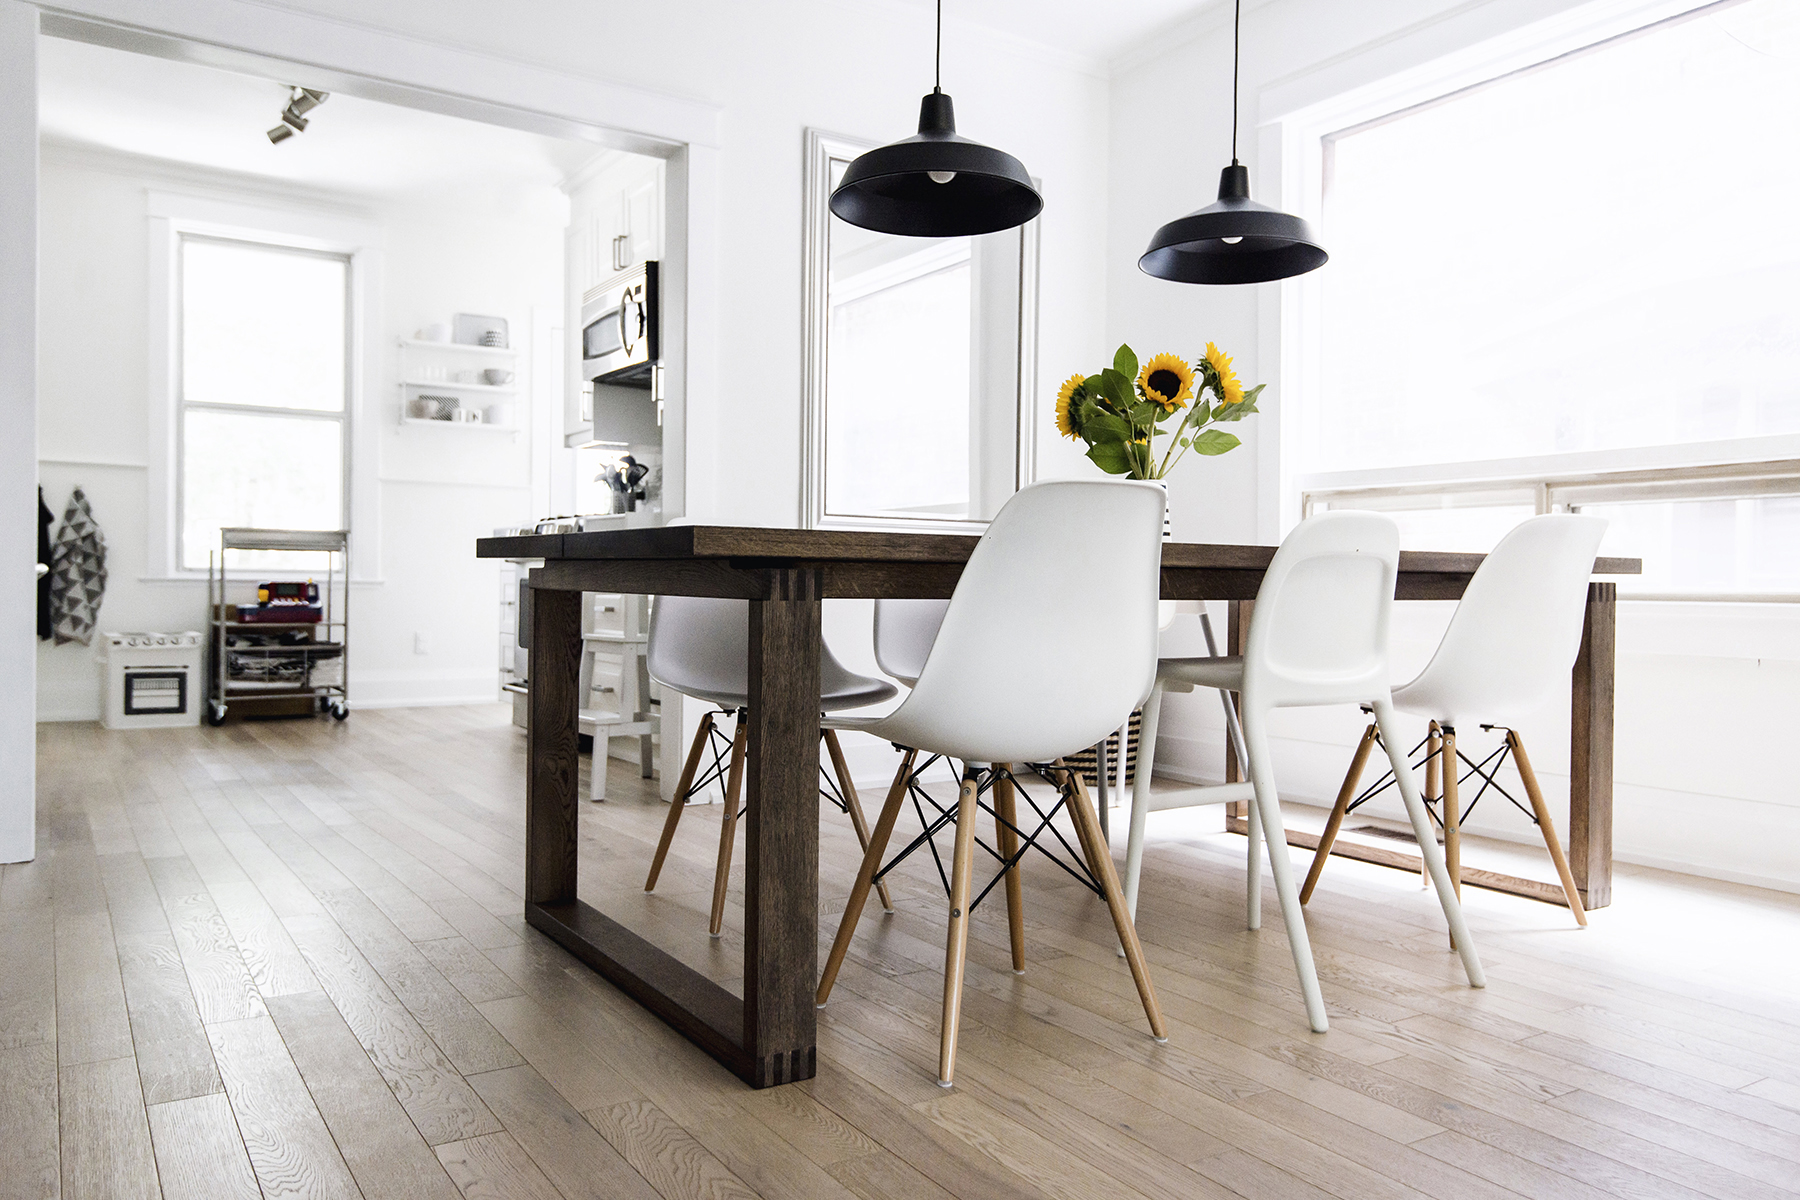 Top 10 tips for adding scandinavian style to your home Scandinavian style dining room